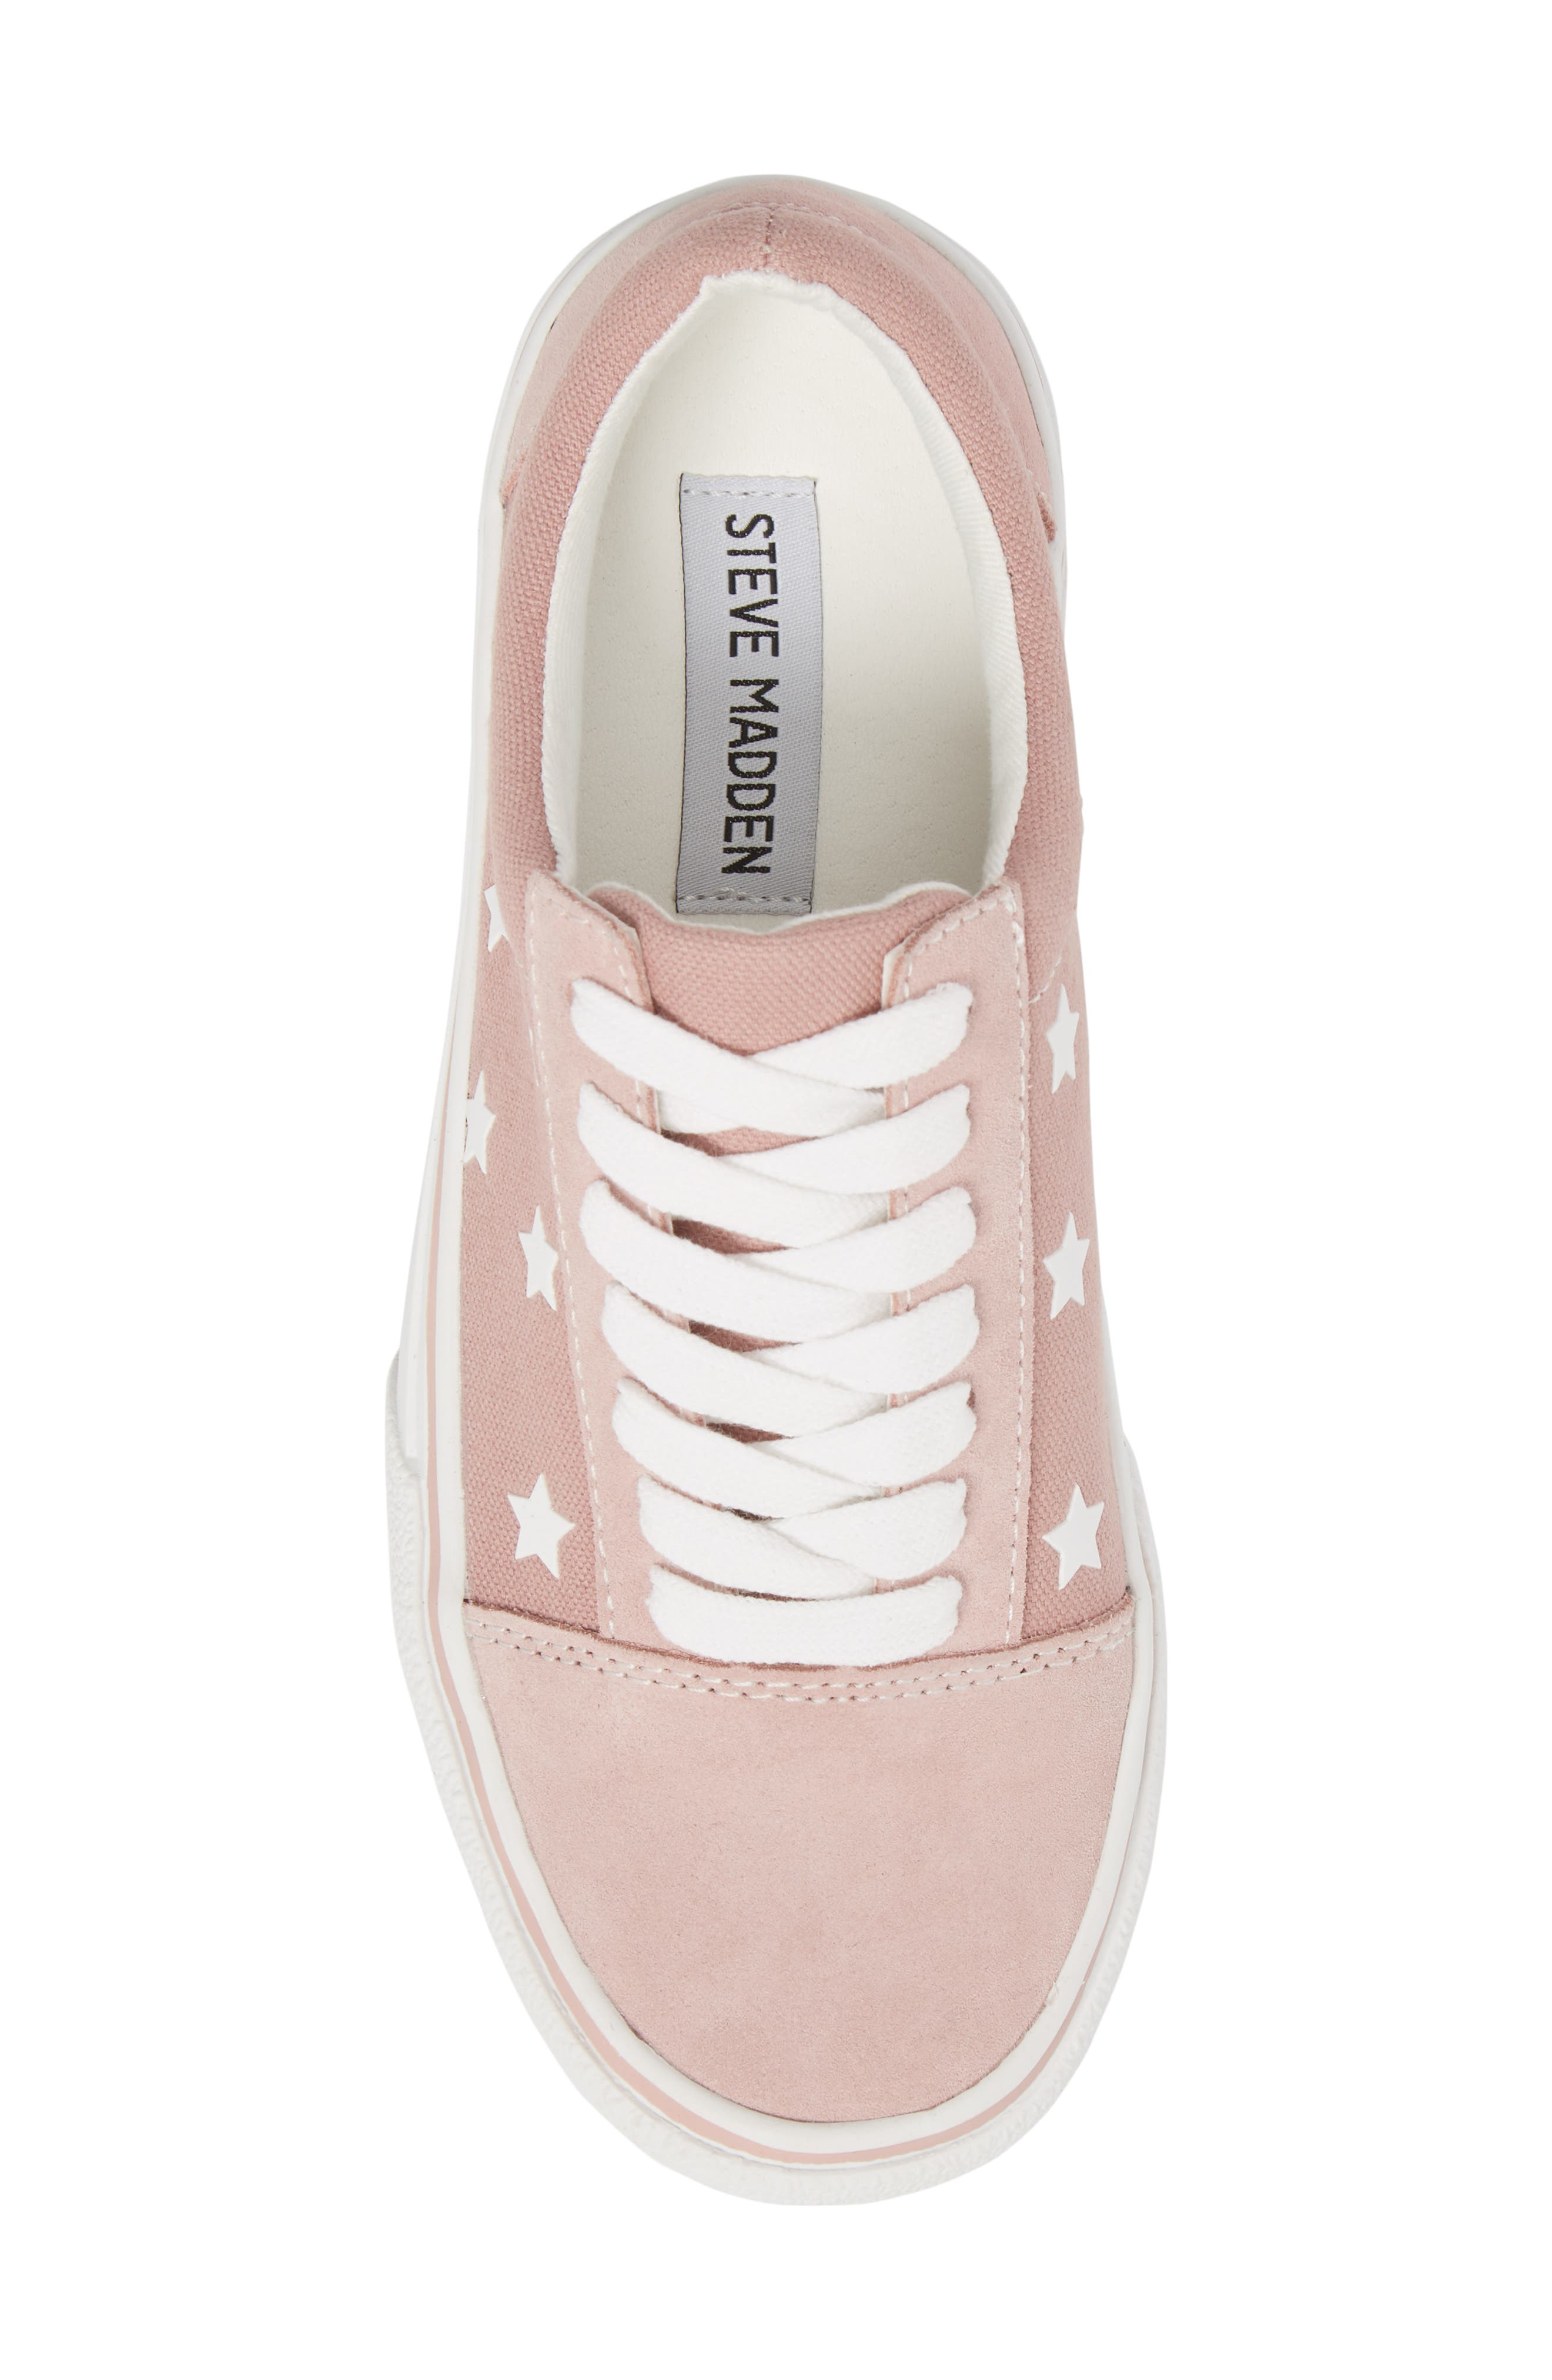 Emile Platform Sneaker,                             Alternate thumbnail 5, color,                             Pink Suede